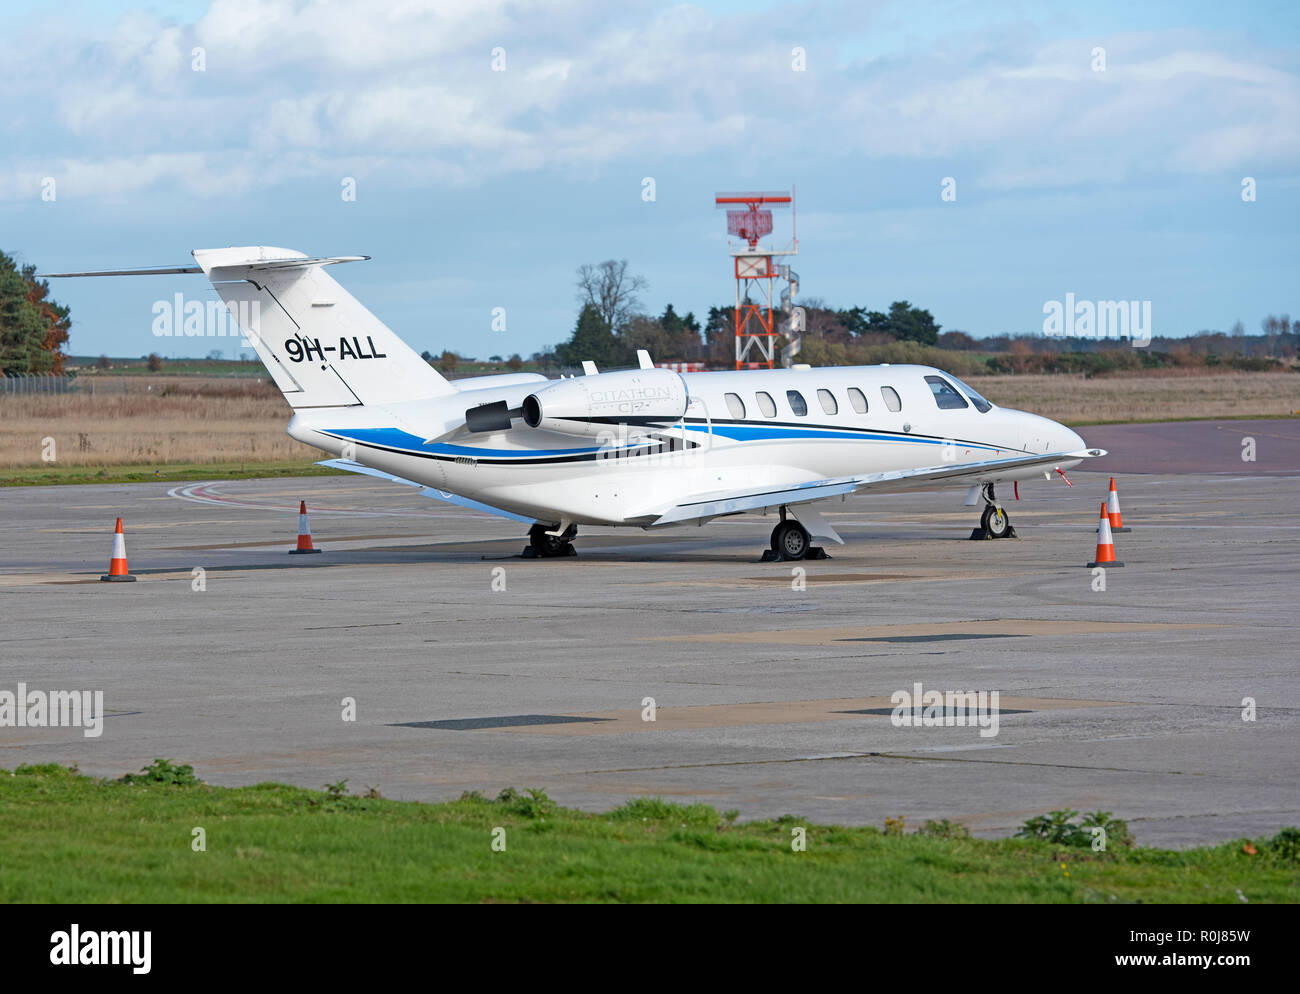 Registered in Malta A cessna Citation 525 parked after its arrival at Inverness Dalcross airport Scotland.UK. - Stock Image